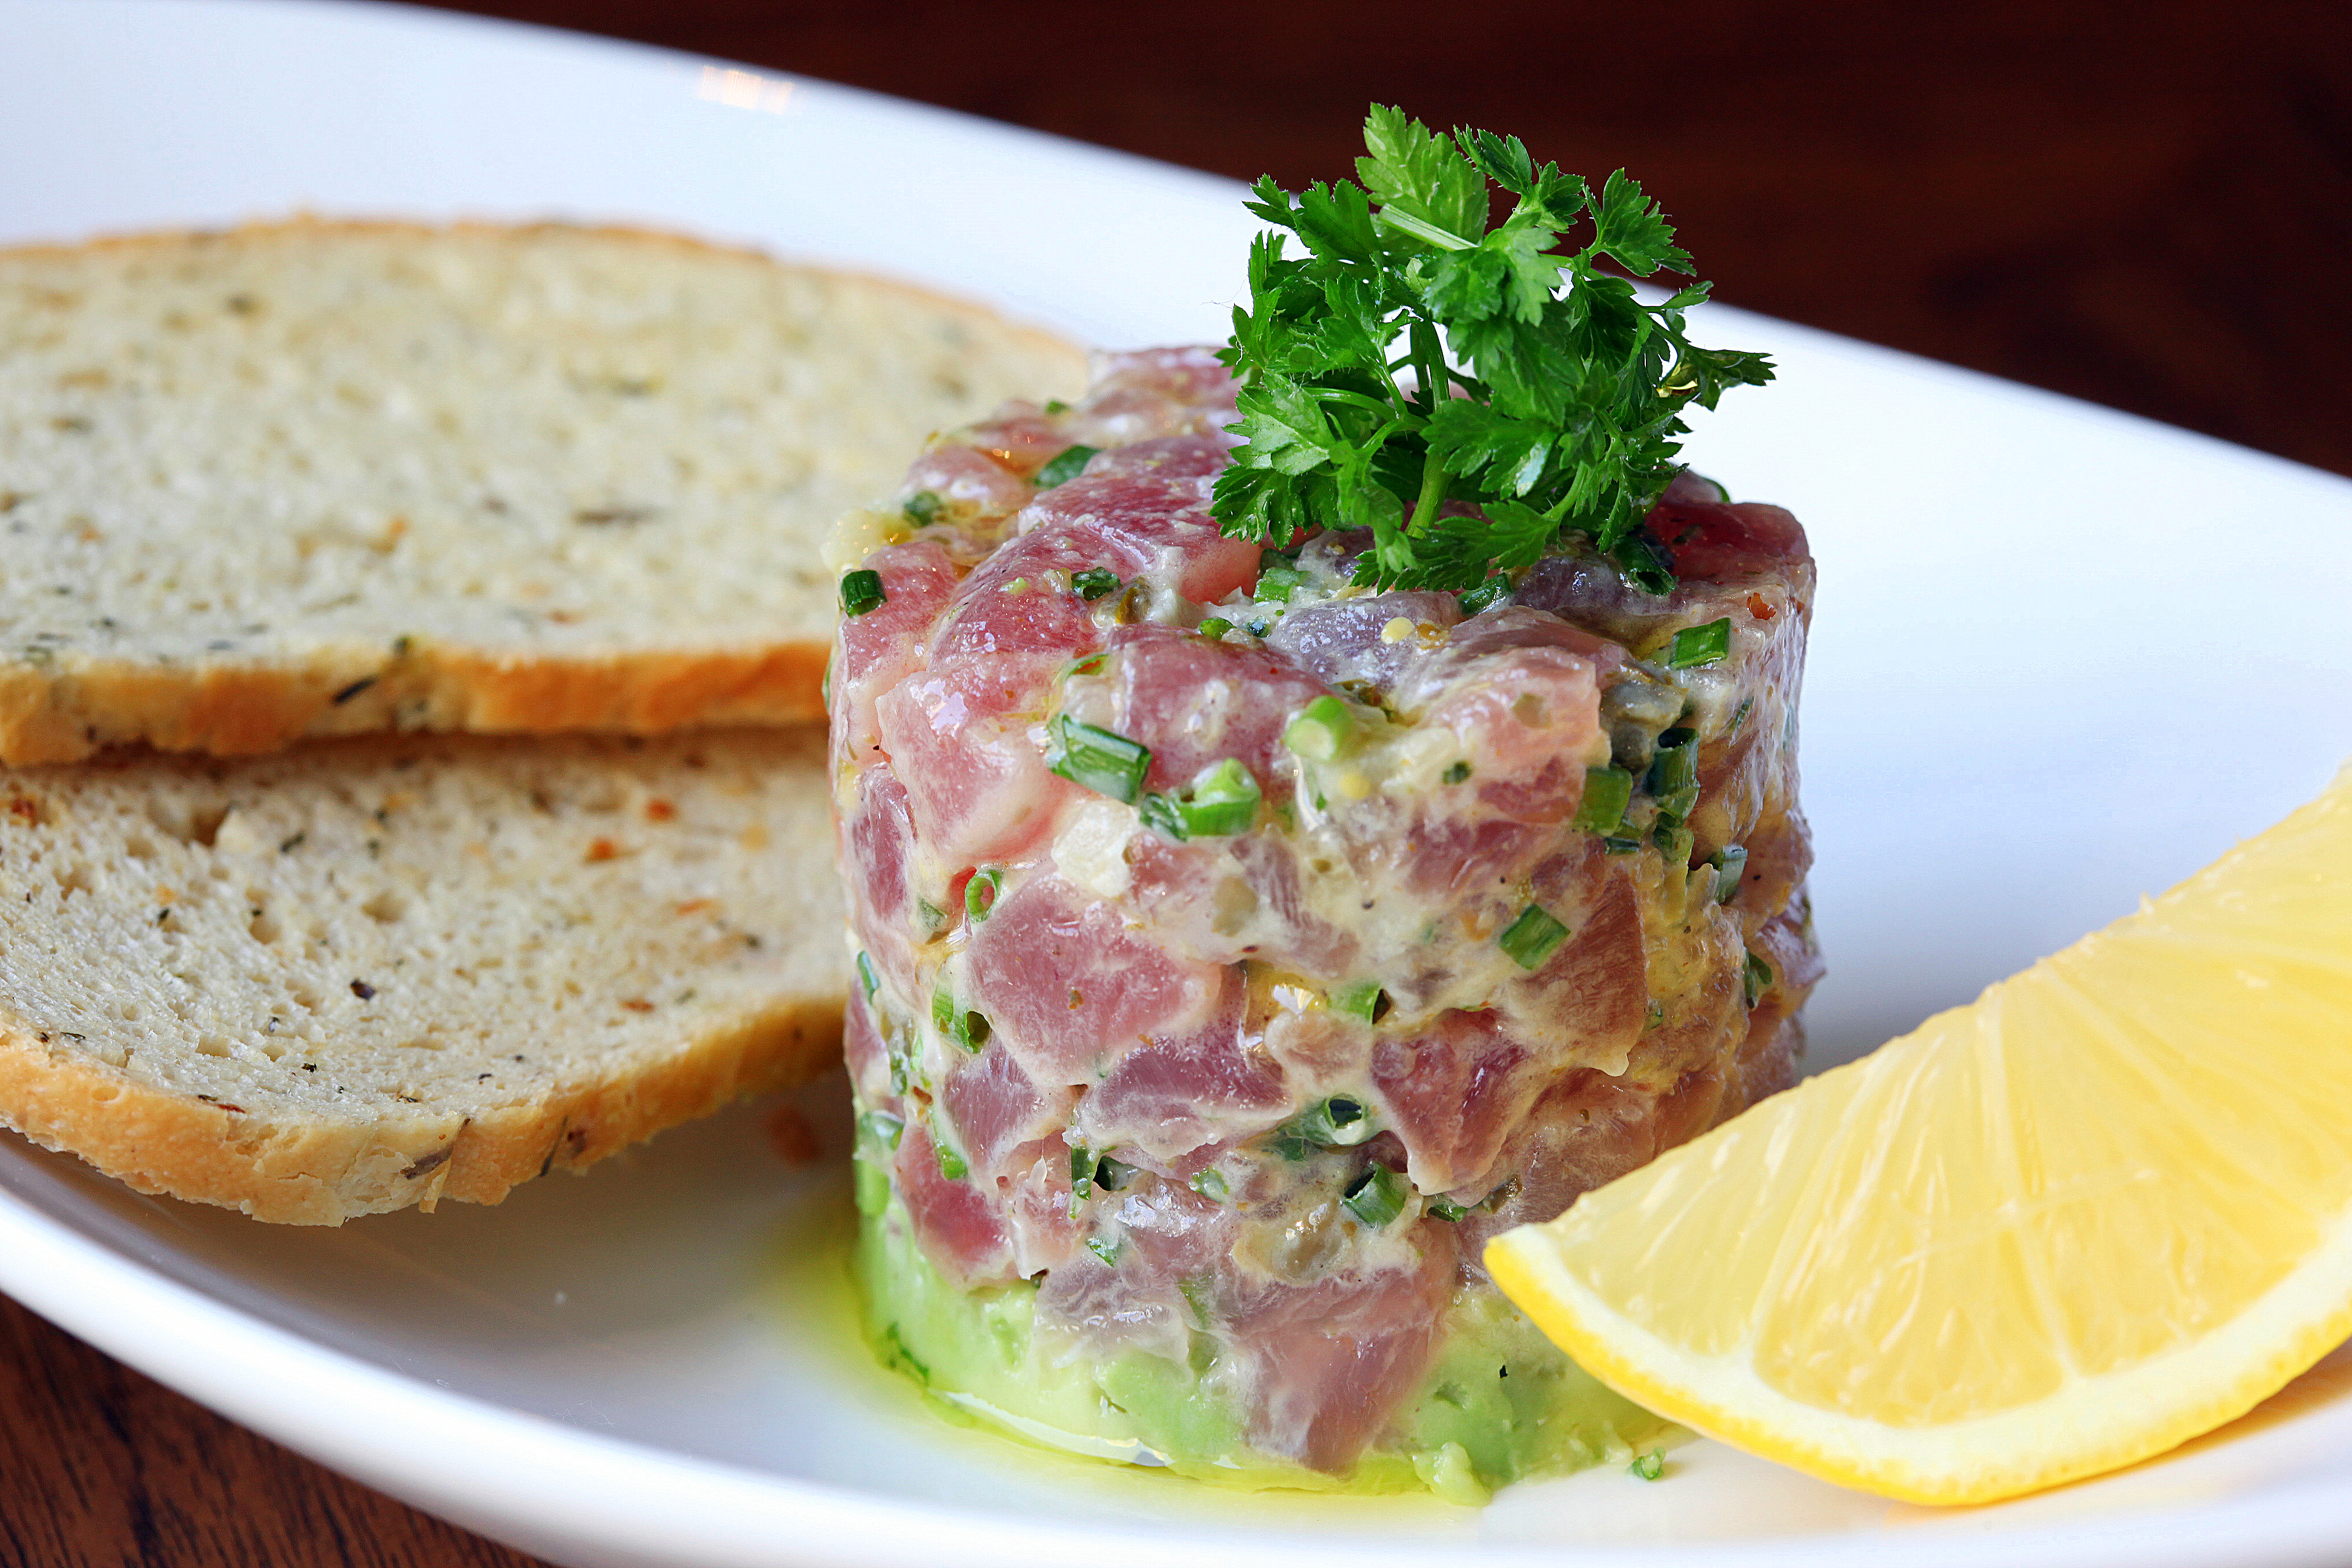 ... Food: The Origins of Tuna Tartare, Basque Style Wines, Handmade Udon